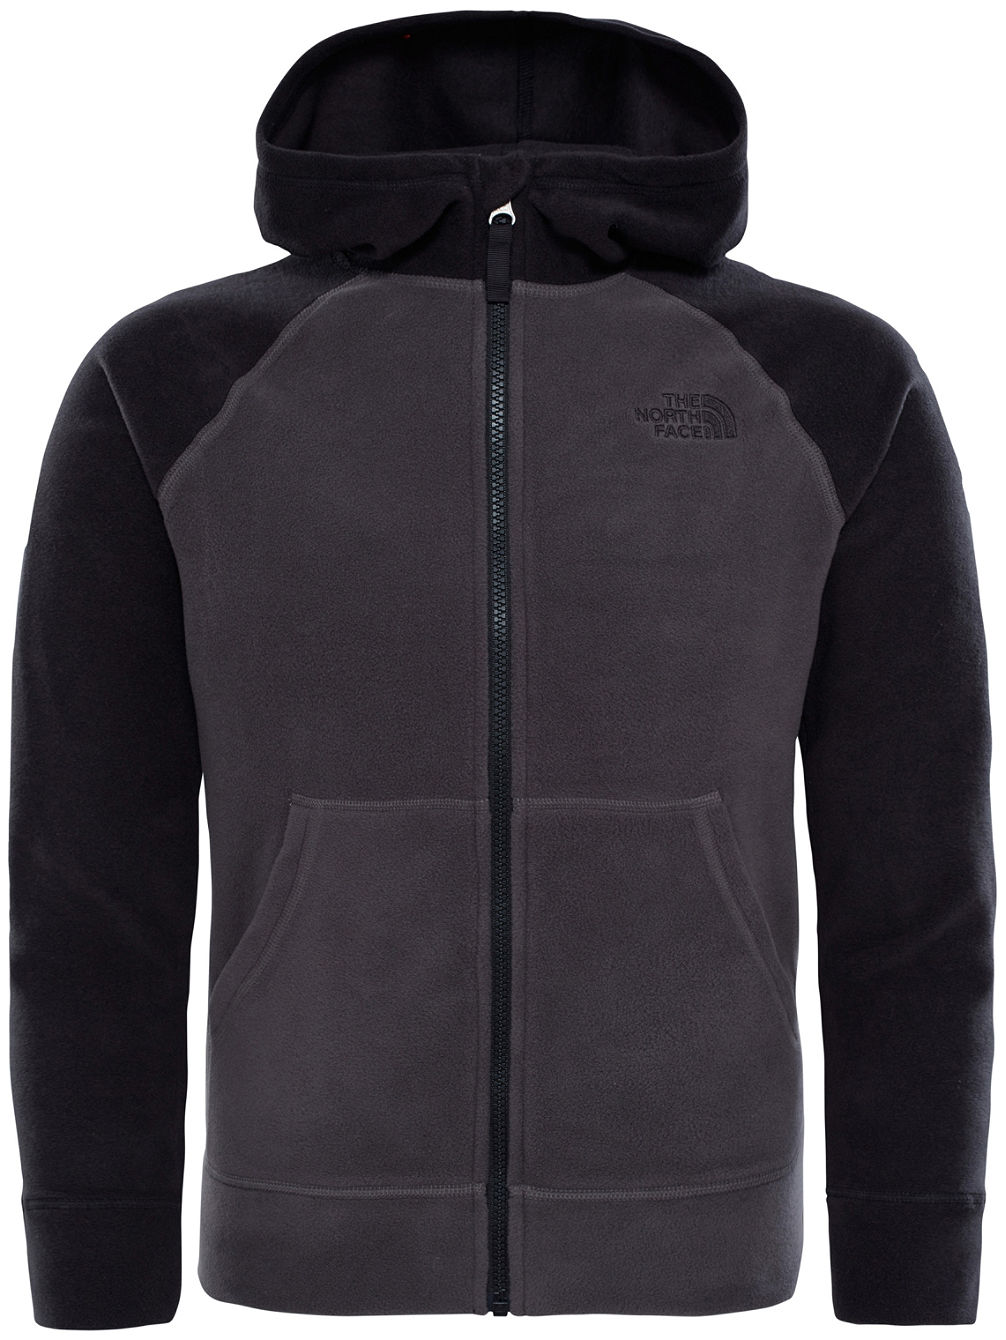 Glacier Hooded Fleece Jacket Boys